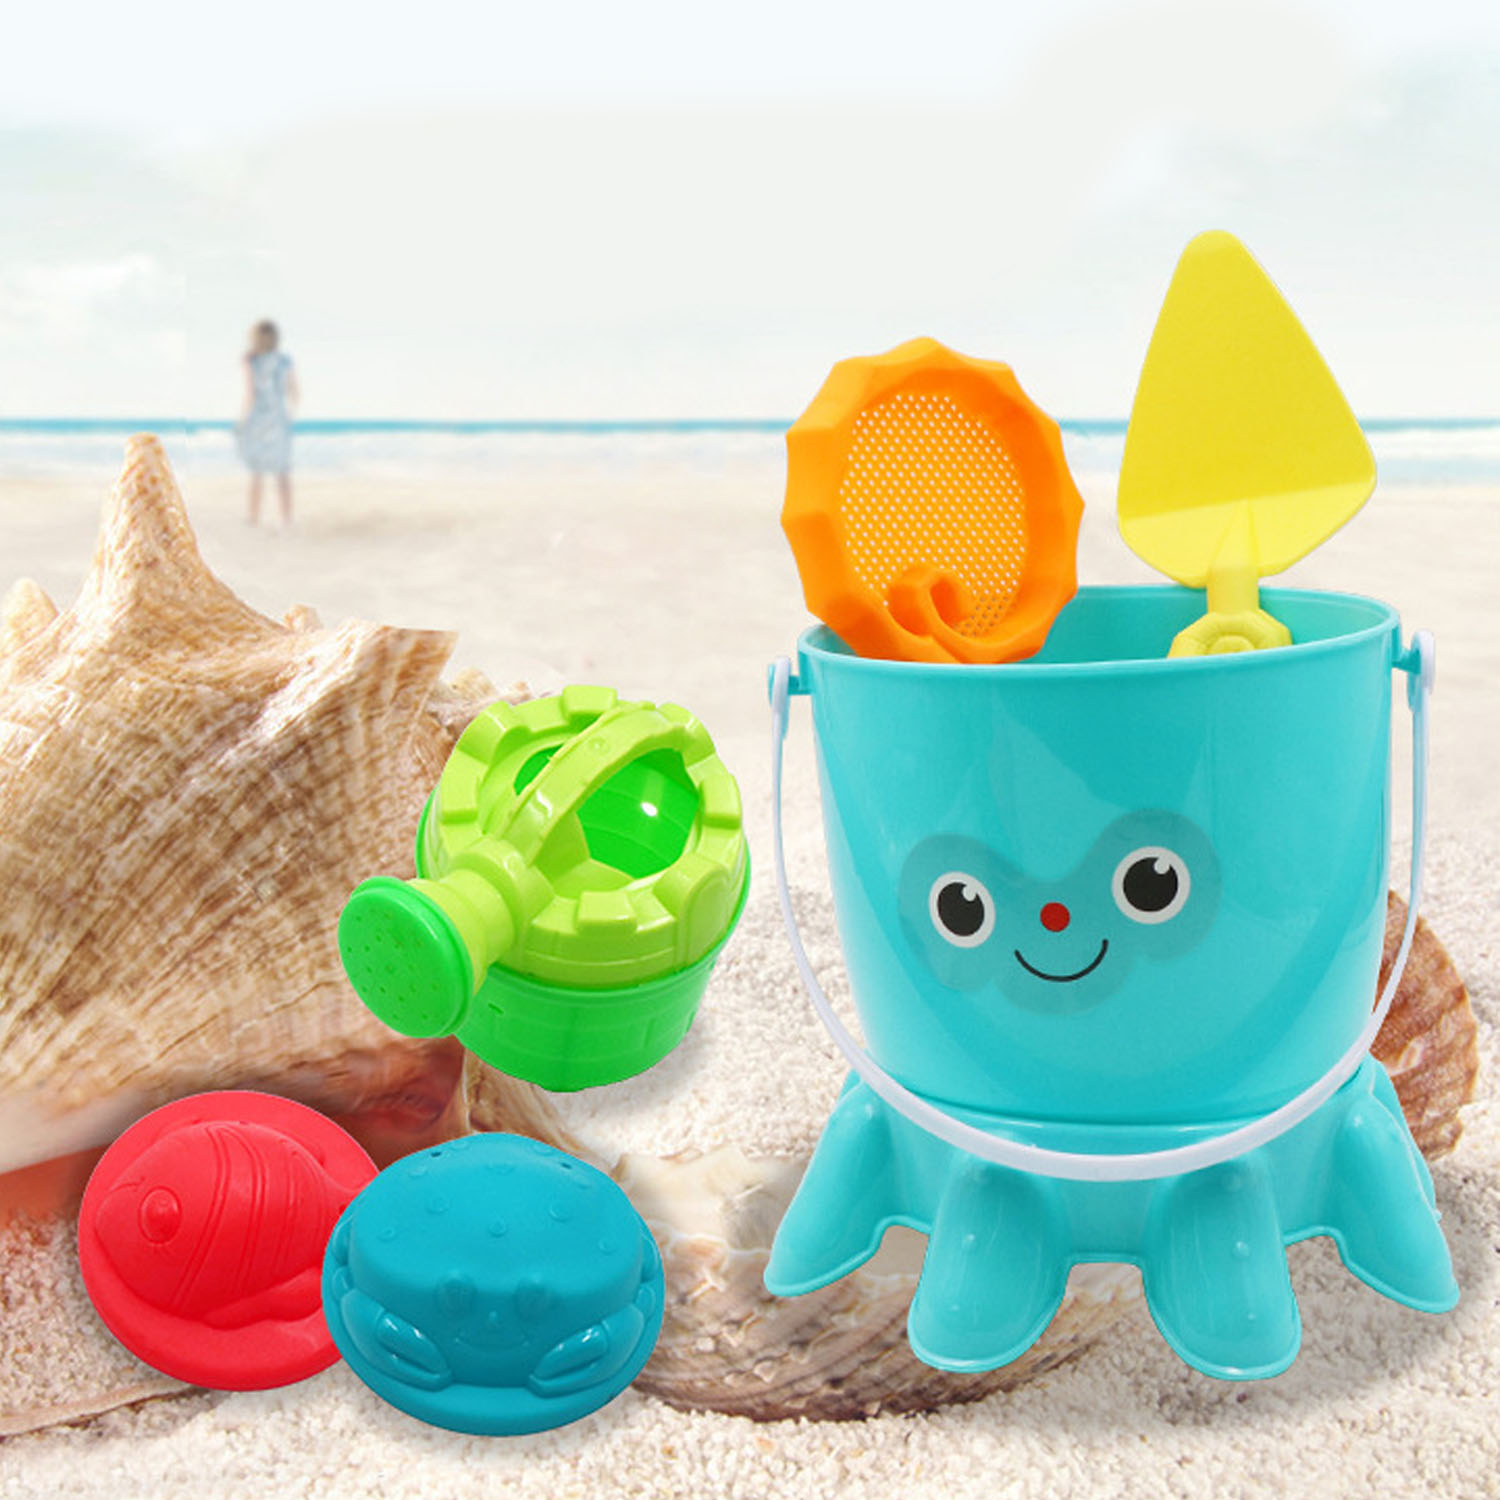 6pcs Funny Beach Sand Game Toys Kit Kids Pretend Role Play Toy Playset Including Shovels Bucket Watering Pot Sand Model